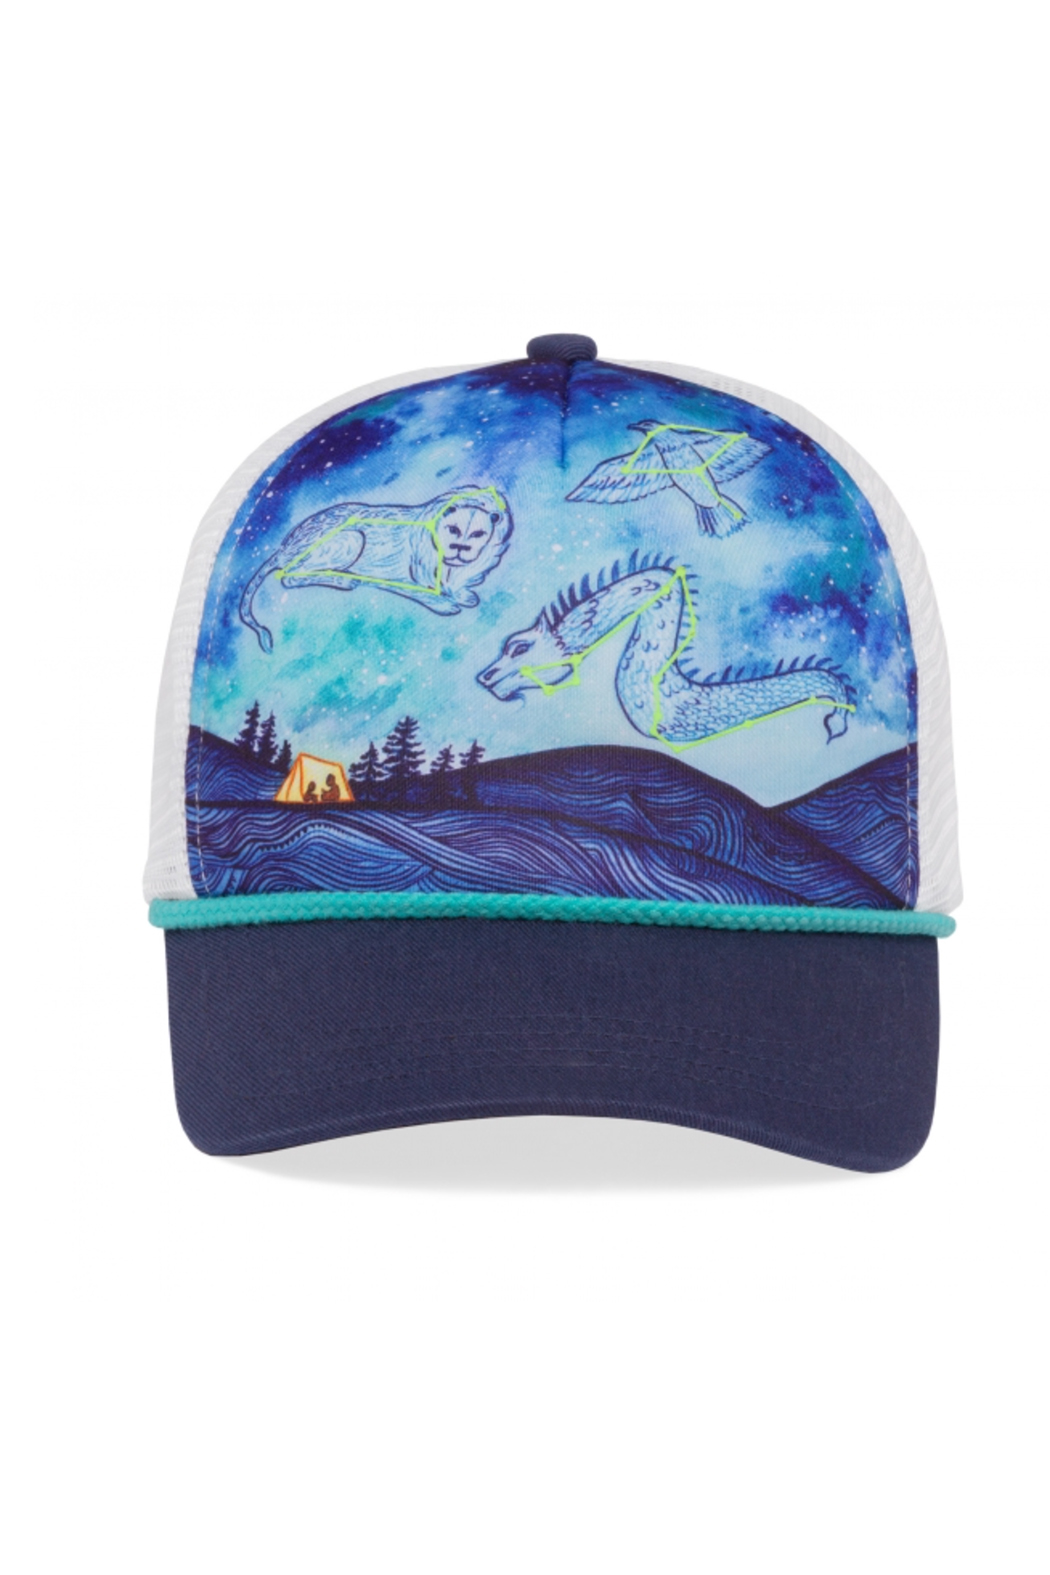 Sunday Afternoons Kids Dreaming Sky Trucker Hat - Main Image